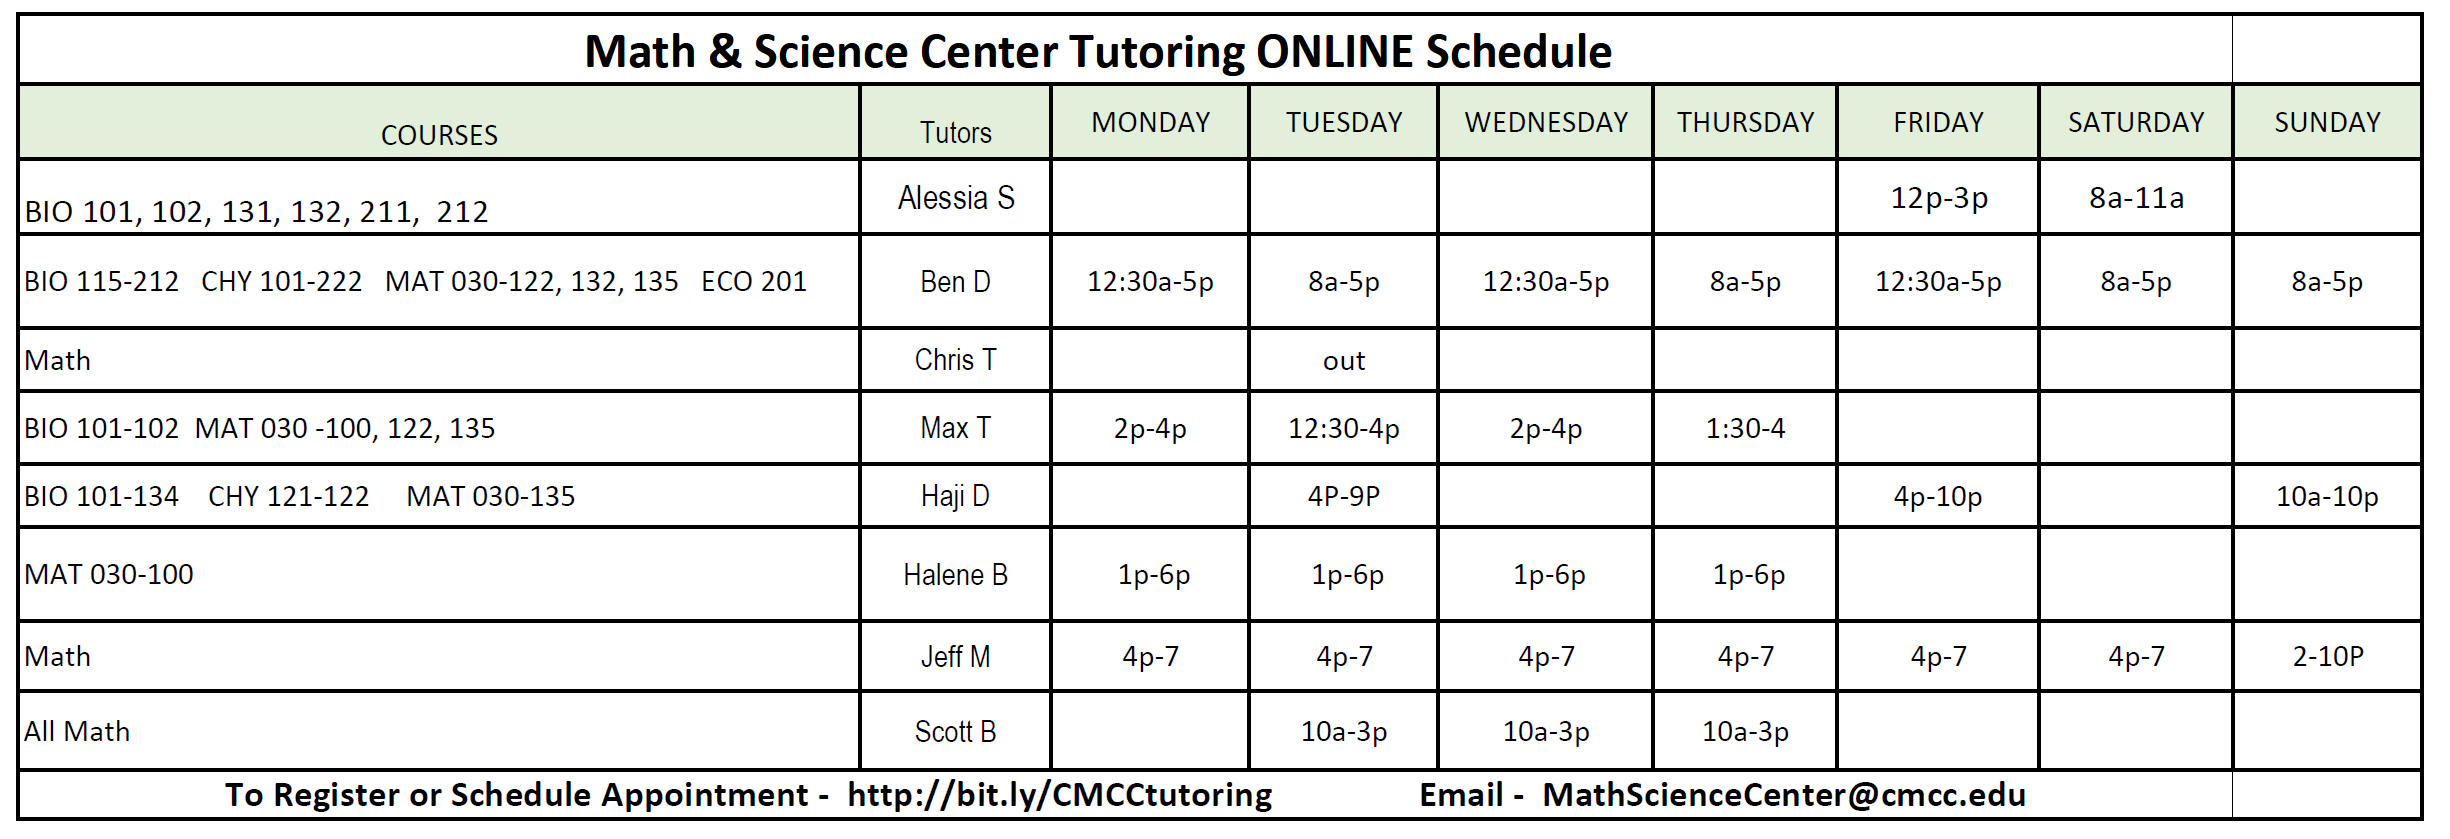 Math Science Tutoring Schedule as of 09-28-2020